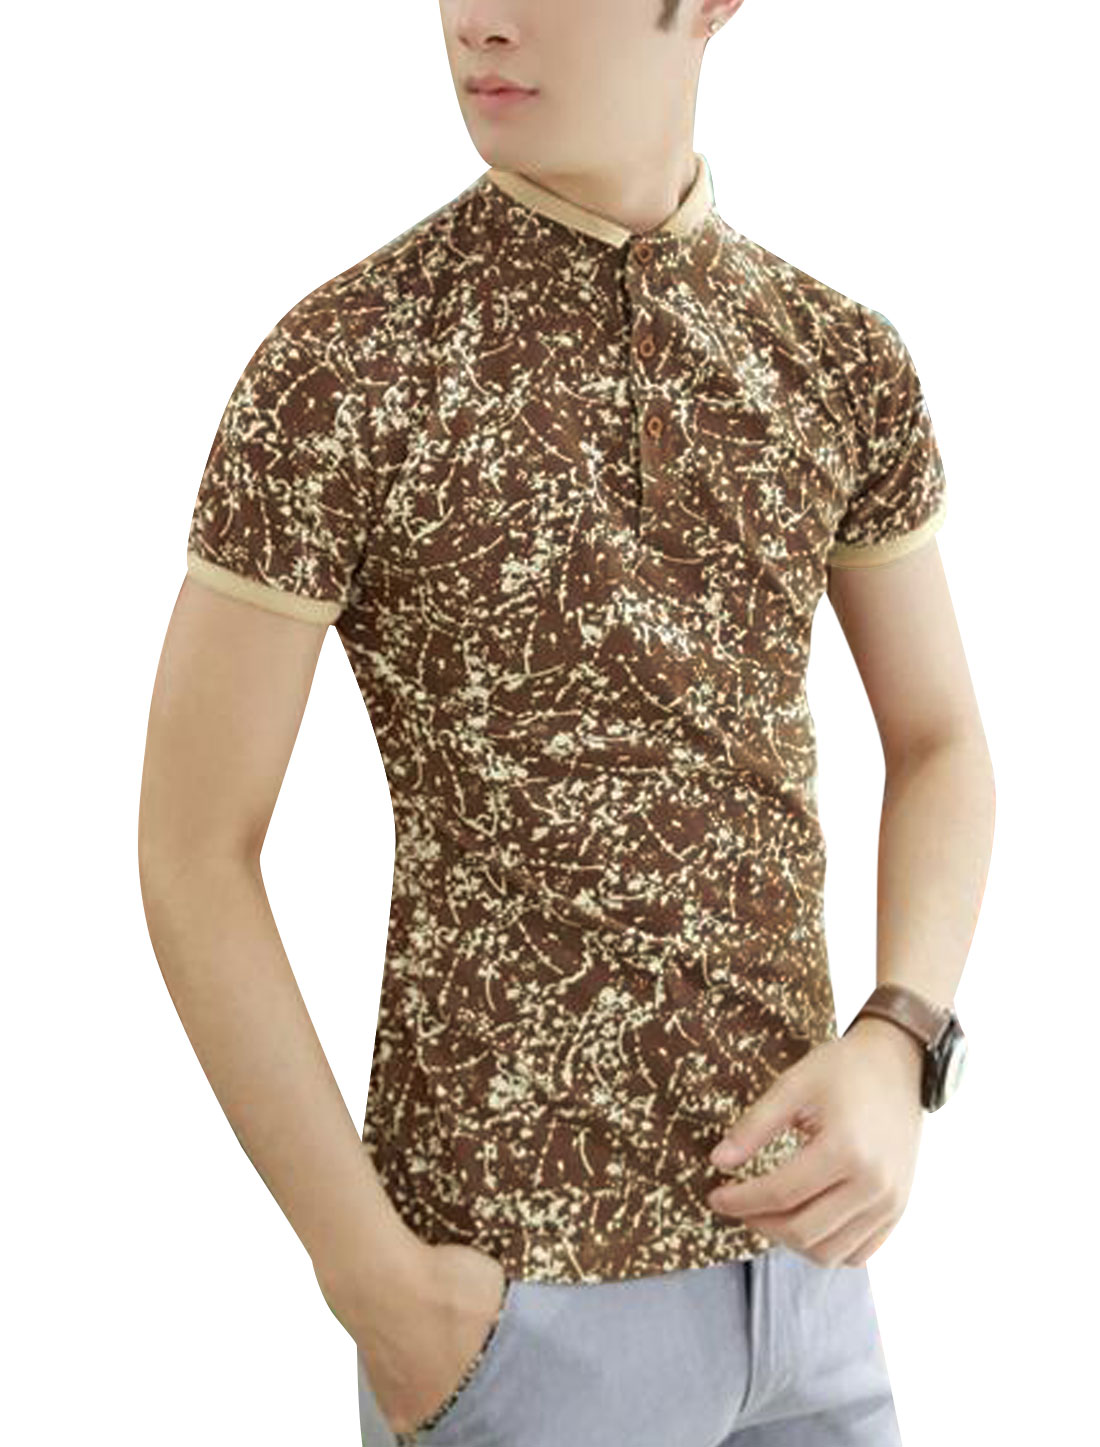 Novelty Print Contrast Collar Cuffs Stand Collar Brown M T Shirt for Men